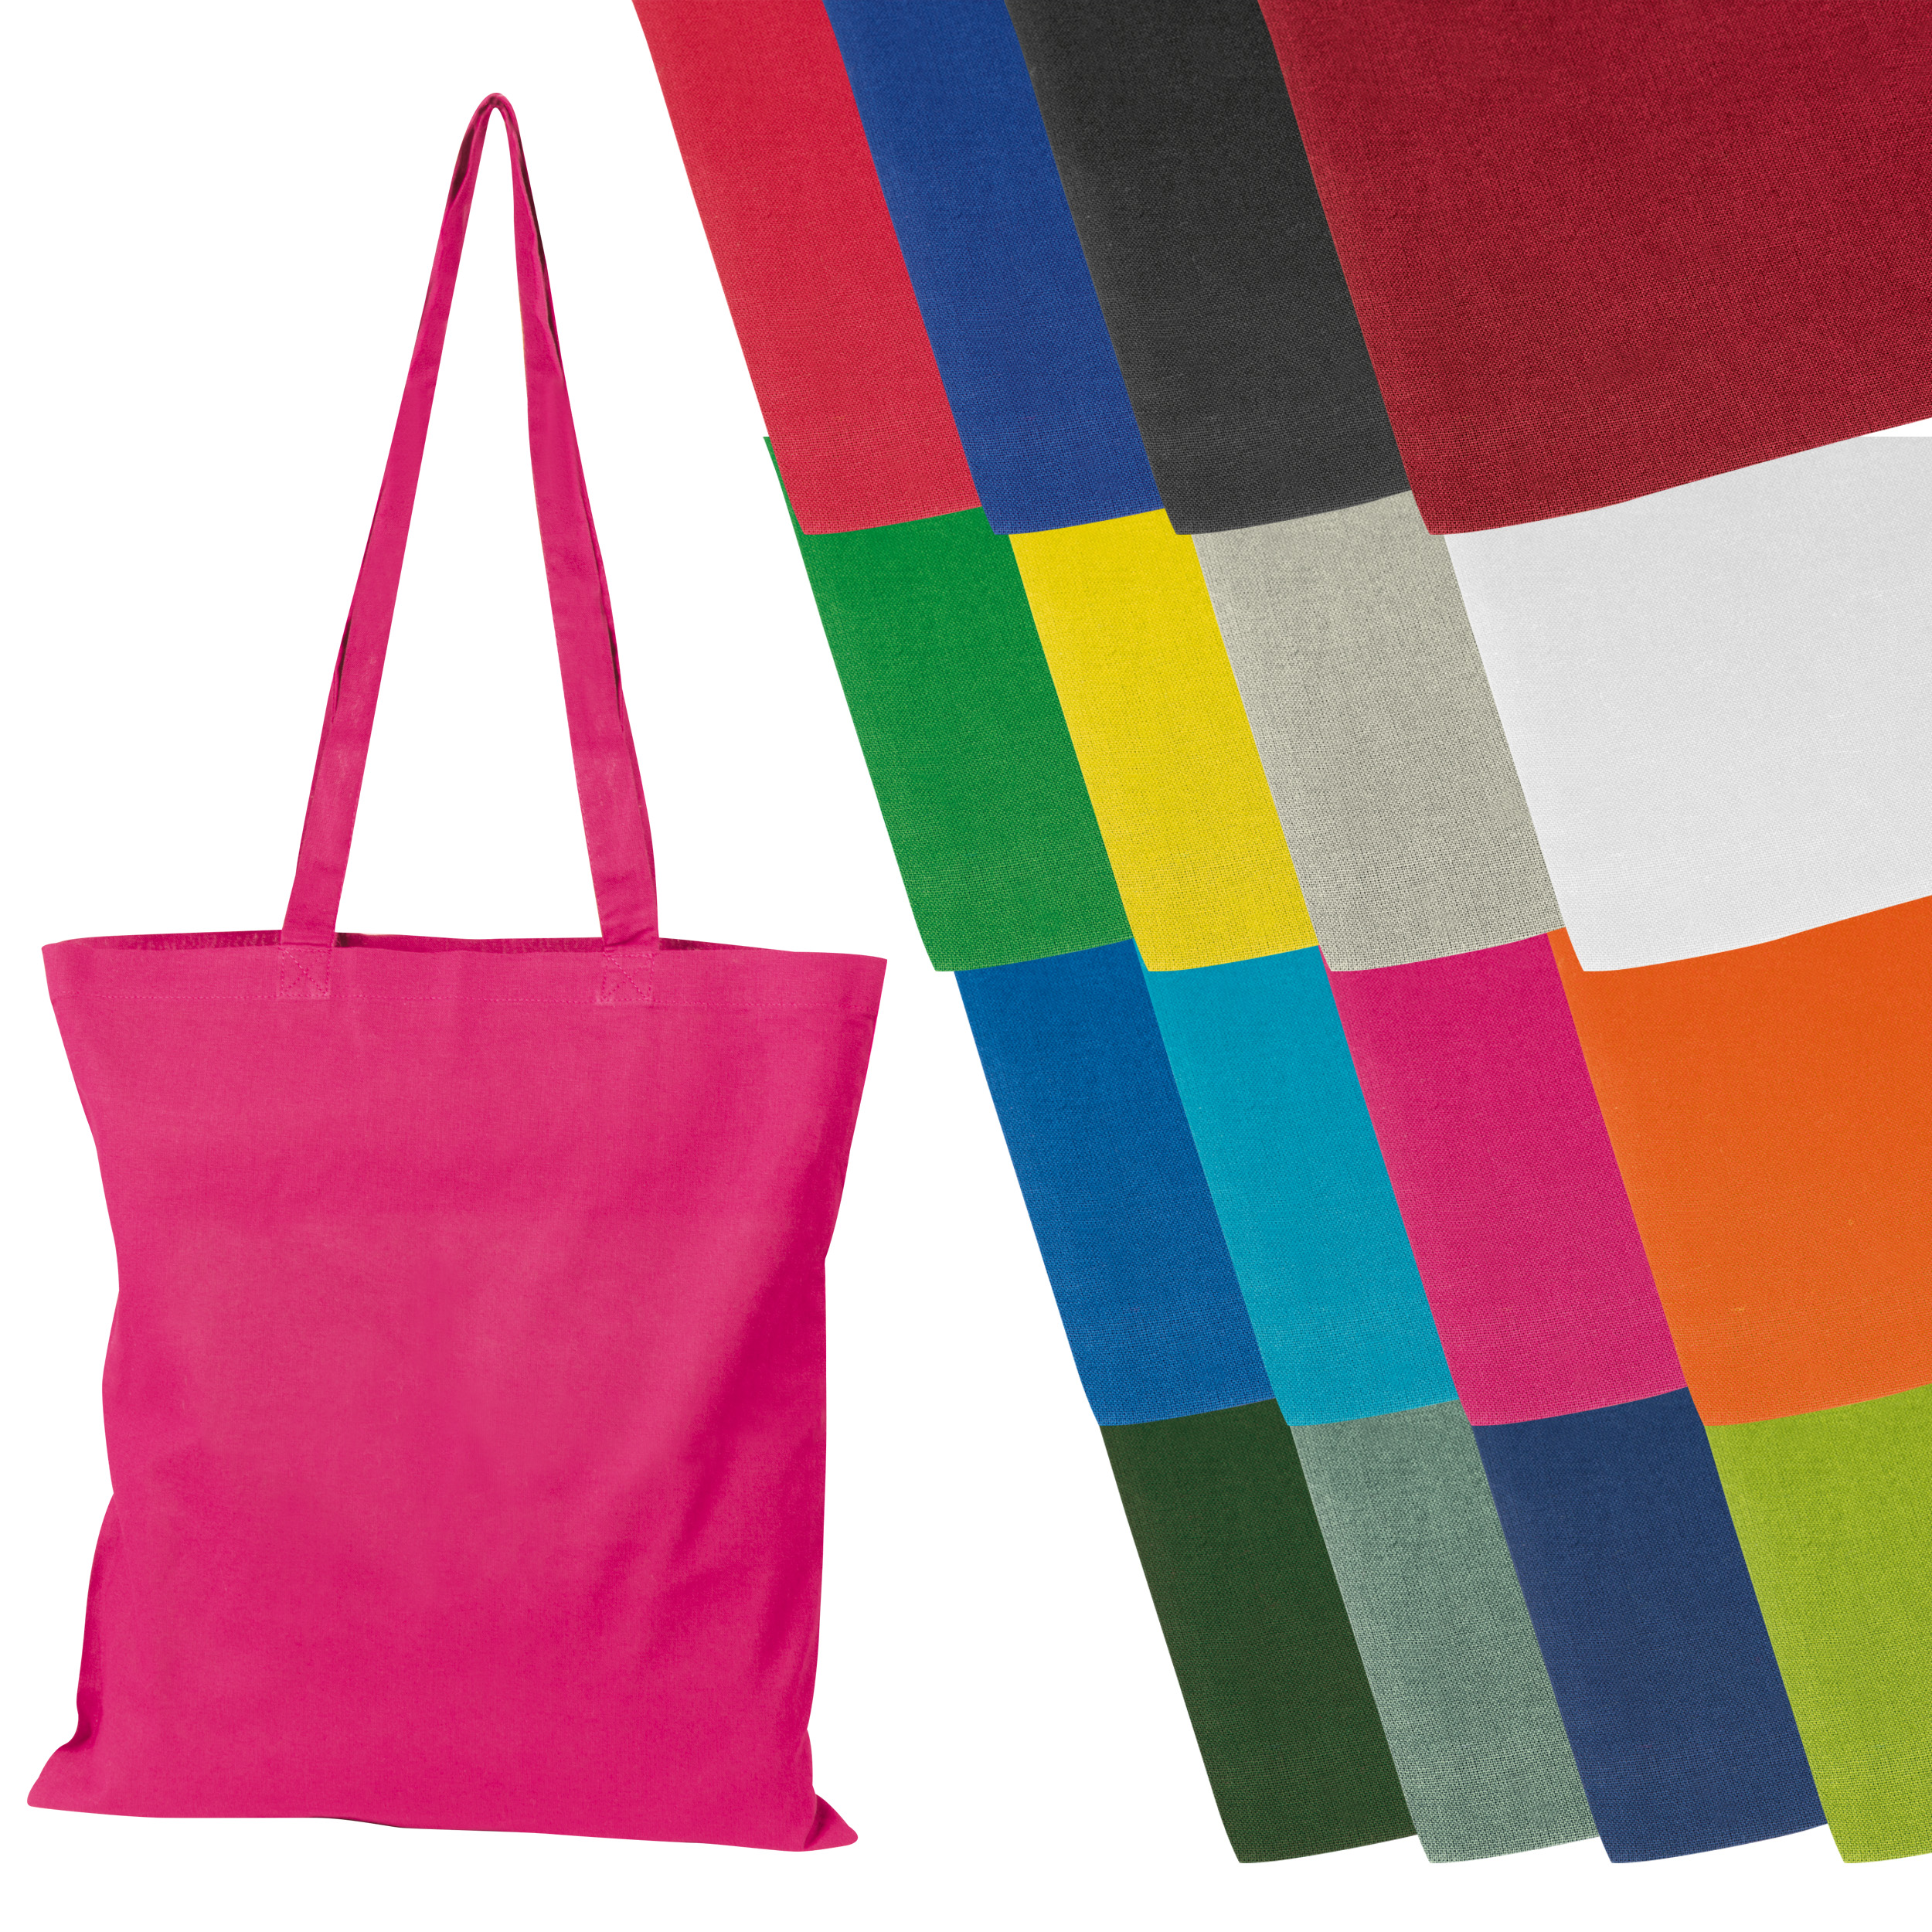 Cotton bag with long handles